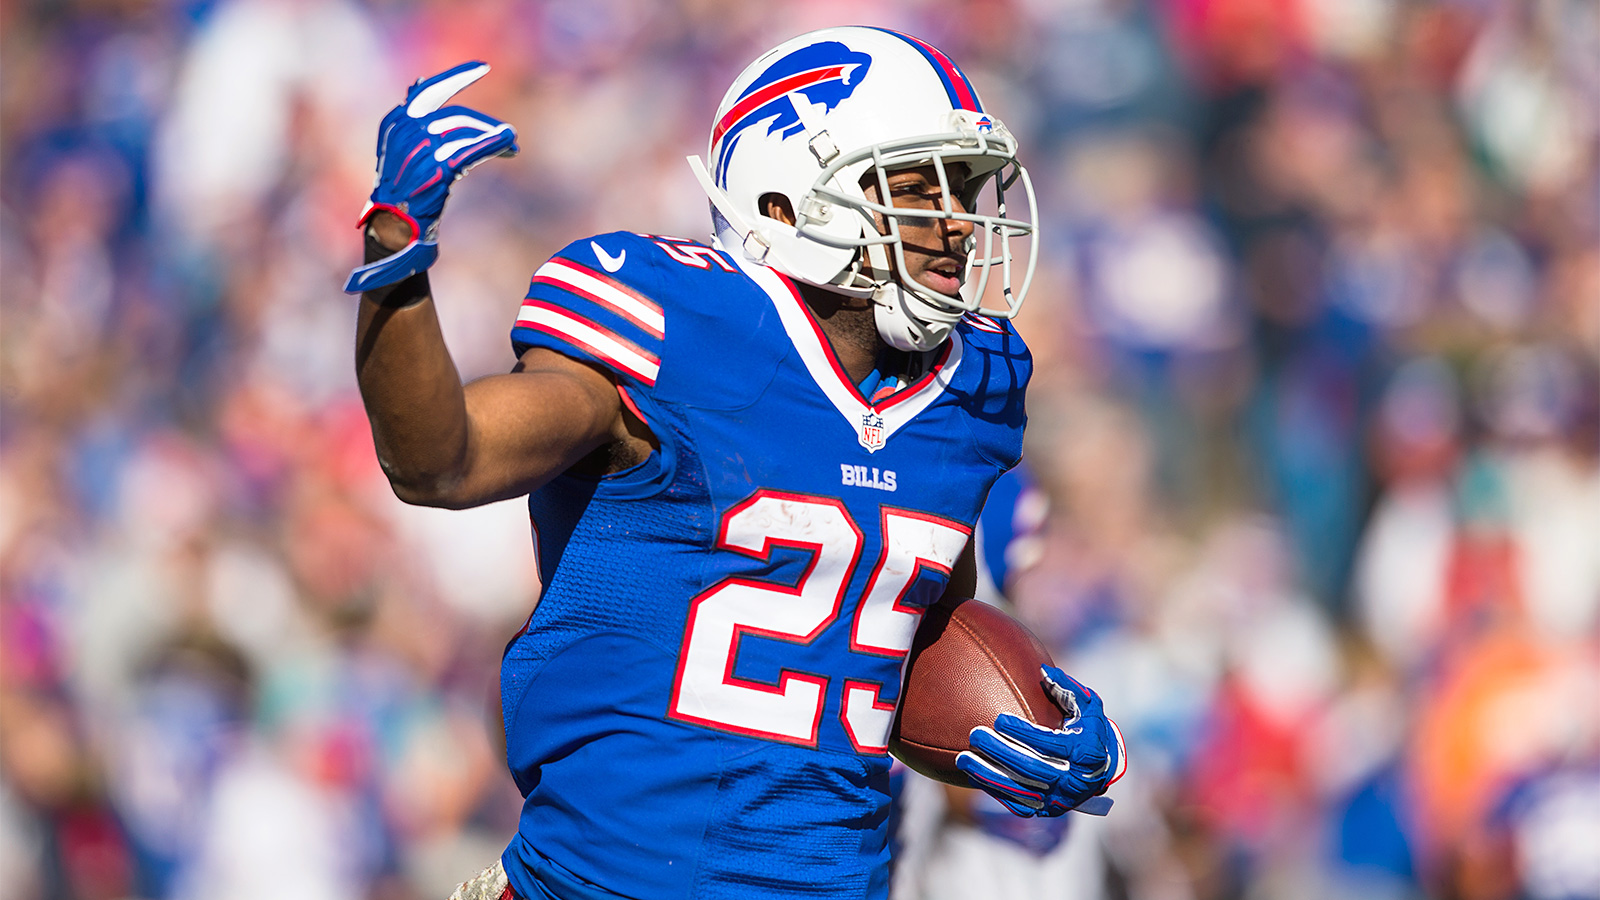 Bills' LeSean McCoy makes fourth Pro Bowl, Incognito and Darby snubbed